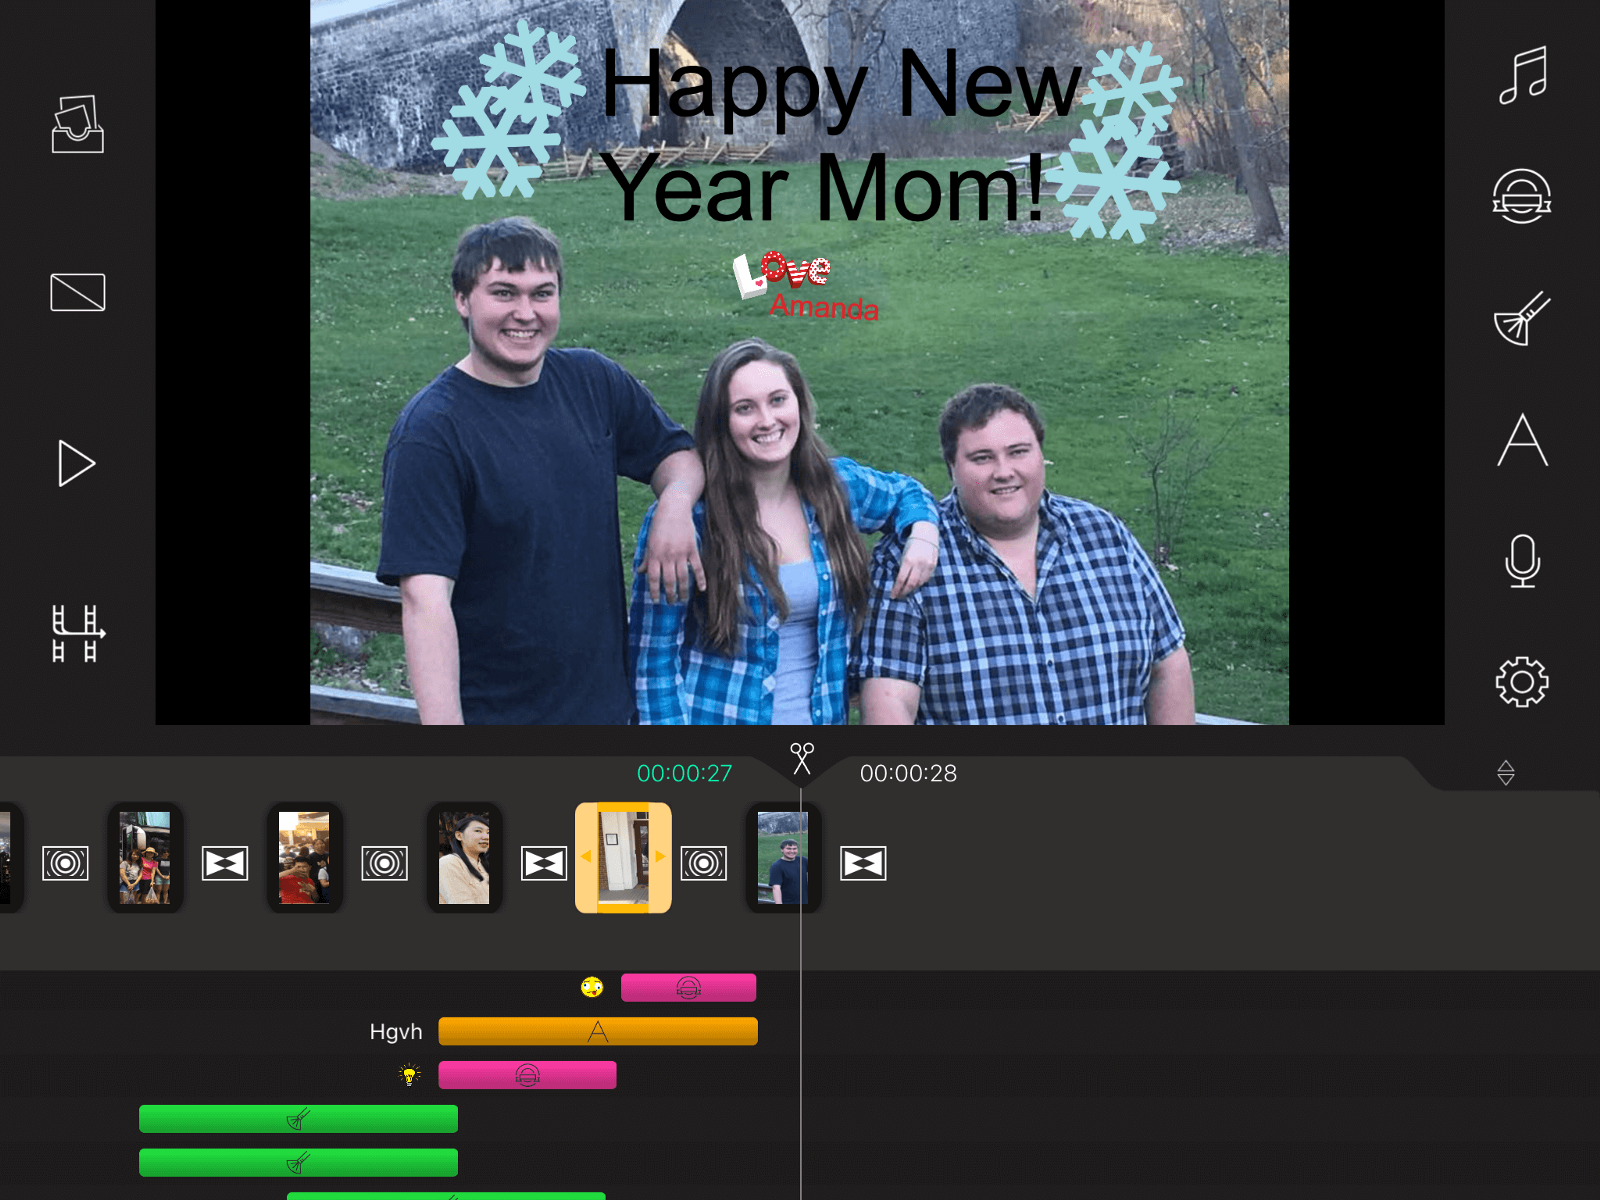 New Year's Video Card Example